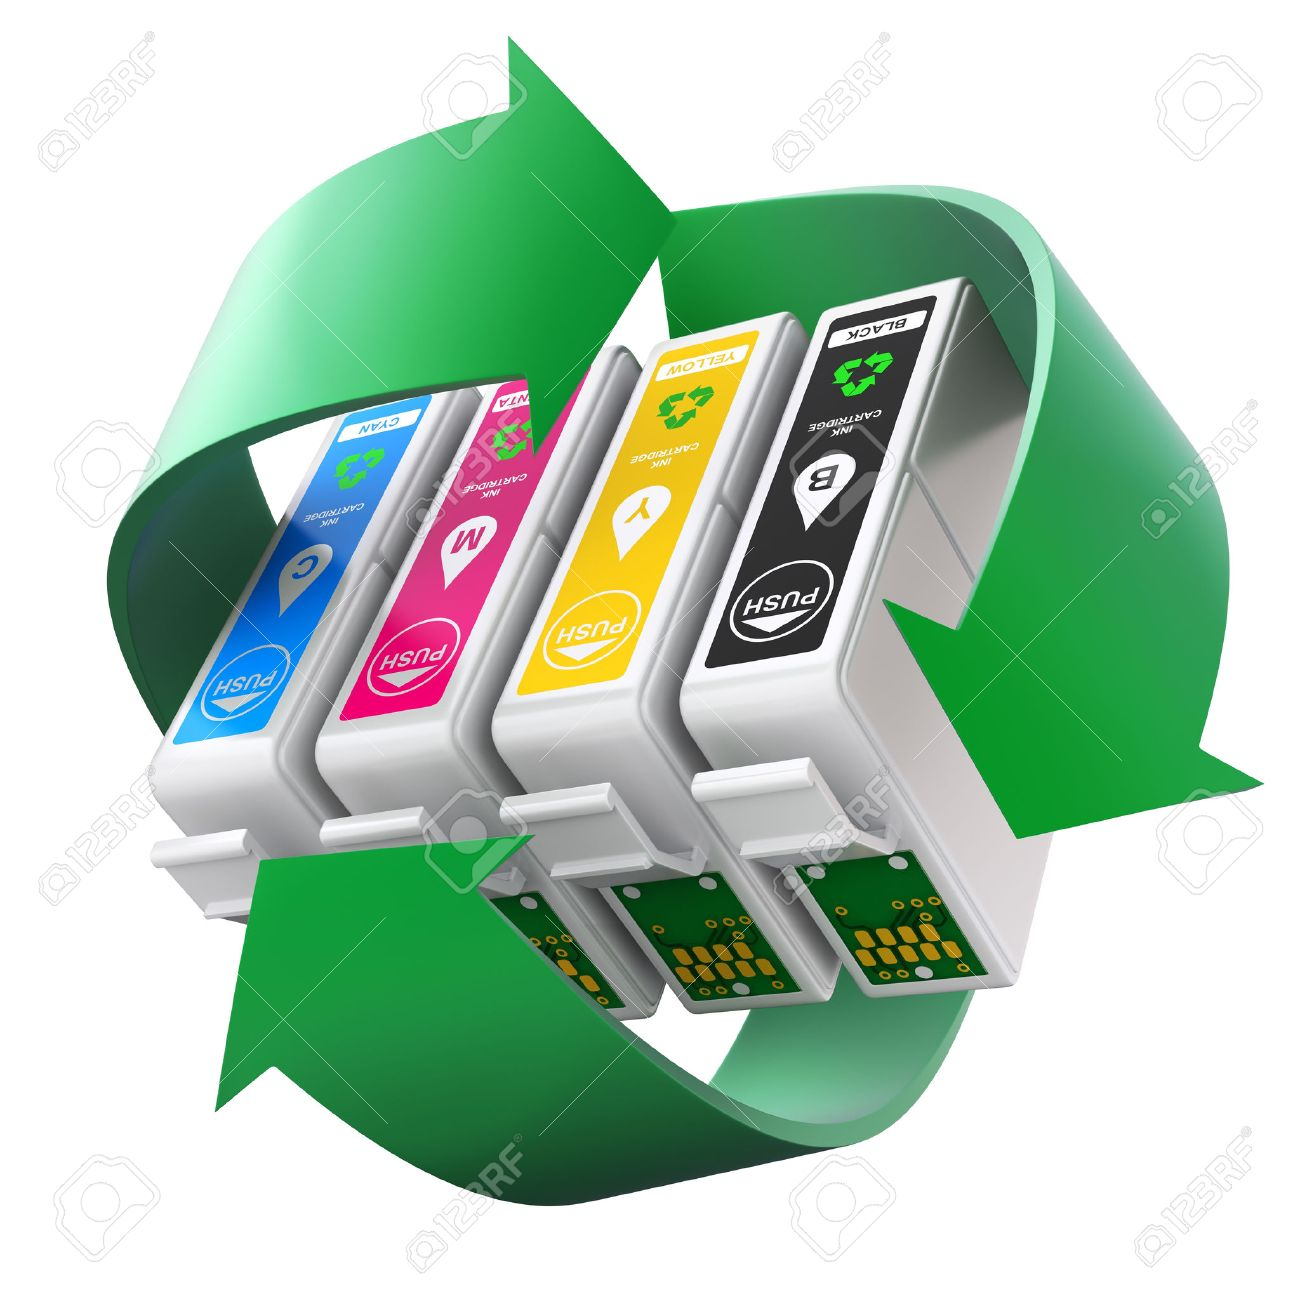 CMYK set of cartridges with recycling symbol - 54103769